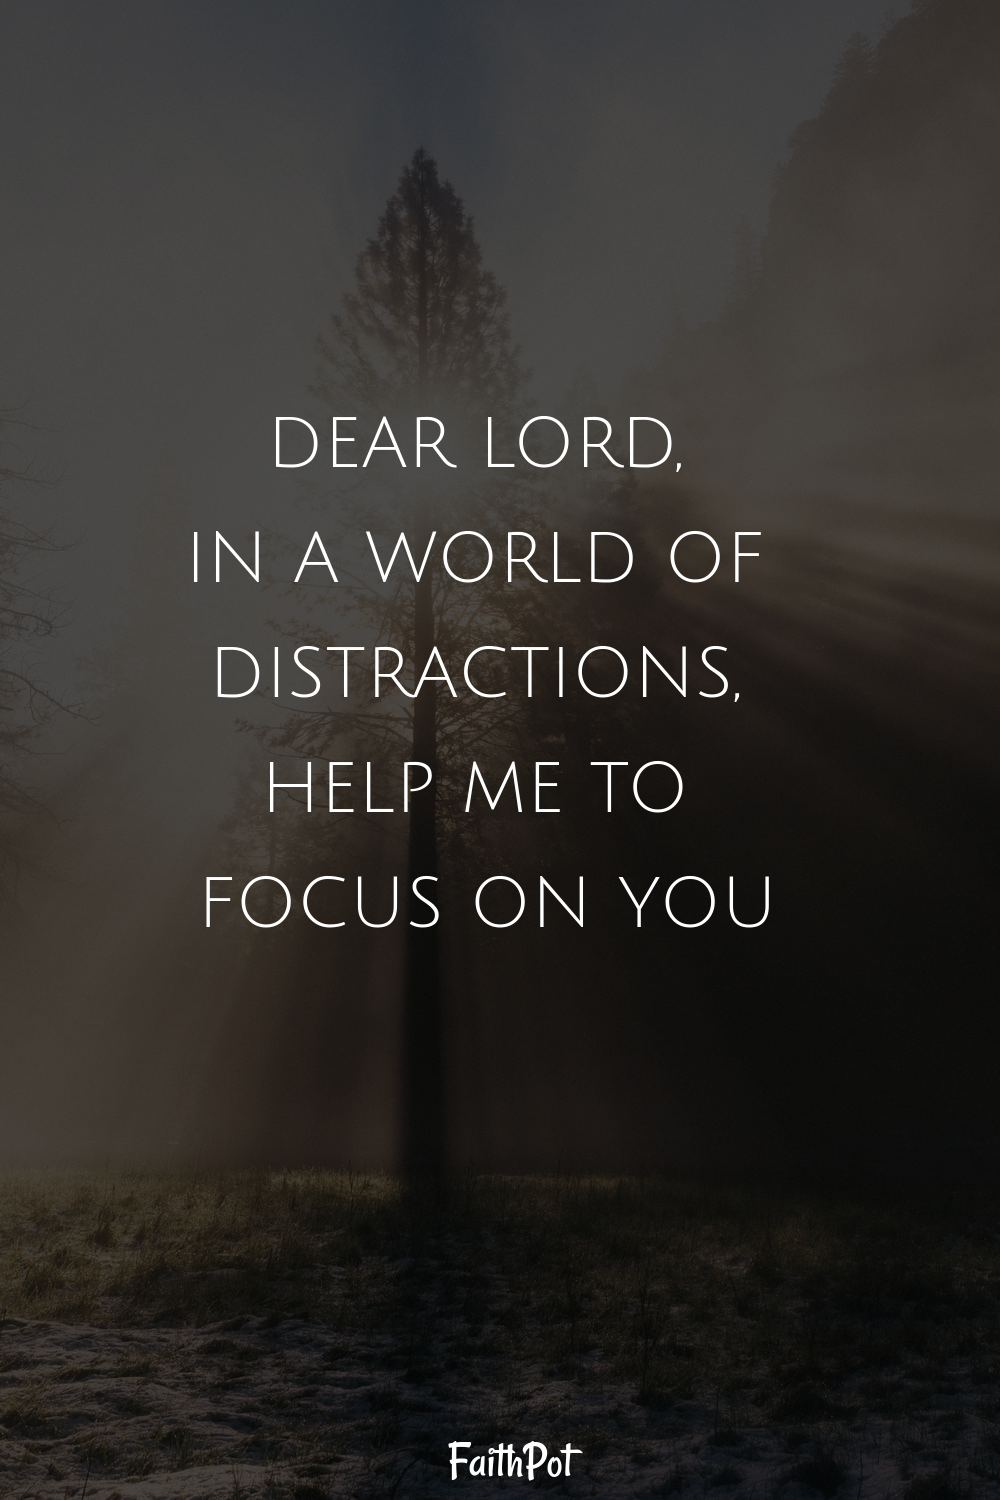 Focus on the Lord